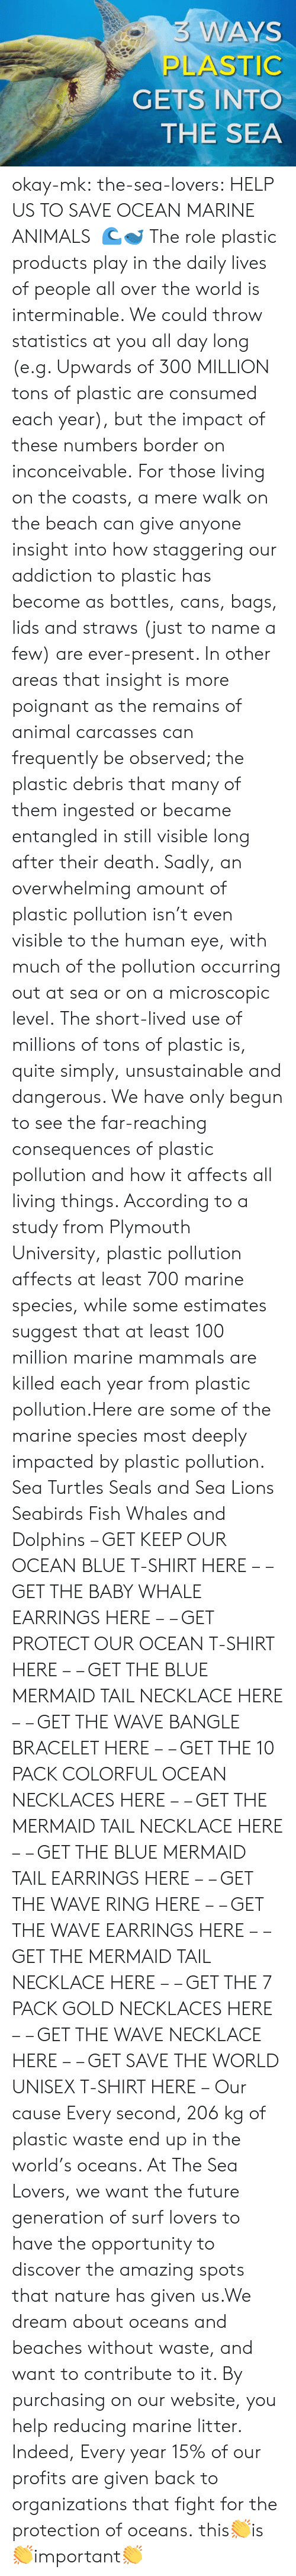 colorful: 3 WAYS  PLASTIC  GETS INTO  THE SEA okay-mk: the-sea-lovers:  HELP US TO SAVE OCEAN  MARINE ANIMALS  🌊🐋 The role plastic products play in the daily lives of people all over the world is interminable. We could throw statistics at you all day long (e.g. Upwards of 300 MILLION tons of plastic are consumed each year), but the impact of these numbers border on inconceivable. For those living on the coasts, a mere walk on the beach can give anyone insight into how staggering our addiction to plastic has become as bottles, cans, bags, lids and straws (just to name a few) are ever-present. In other areas that insight is more poignant as the remains of animal carcasses can frequently be observed; the plastic debris that many of them ingested or became entangled in still visible long after their death. Sadly, an overwhelming amount of plastic pollution isn't even visible to the human eye, with much of the pollution occurring out at sea or on a microscopic level. The short-lived use of millions of tons of plastic is, quite simply, unsustainable and dangerous. We have only begun to see the far-reaching consequences of plastic pollution and how it affects all living things. According to a study from Plymouth University, plastic pollution affects at least 700 marine species, while some estimates suggest that at least 100 million marine mammals are killed each year from plastic pollution.Here are some of the marine species most deeply impacted by plastic pollution. Sea Turtles Seals and Sea Lions Seabirds Fish Whales and Dolphins – GET KEEP OUR OCEAN BLUE T-SHIRT HERE – – GET THE BABY WHALE EARRINGS HERE – – GET PROTECT OUR OCEAN T-SHIRT HERE – – GET THE BLUE MERMAID TAIL NECKLACE HERE – – GET THE WAVE BANGLE BRACELET HERE – – GET THE 10 PACK COLORFUL OCEAN NECKLACES HERE – – GET THE MERMAID TAIL NECKLACE HERE – – GET THE BLUE MERMAID TAIL EARRINGS HERE – – GET THE WAVE RING HERE – – GET THE WAVE EARRINGS HERE – – GET THE MERMAID TAIL NECKLACE HERE – – GET THE 7 PACK GOLD NECKLACES HERE – – GET THE WAVE NECKLACE HERE – – GET SAVE THE WORLD UNISEX T-SHIRT HERE – Our cause Every second, 206 kg of plastic waste end up in the world's oceans. At The Sea Lovers, we want the future generation of surf lovers to have the opportunity to discover the amazing spots that nature has given us.We dream about oceans and beaches without waste, and want to contribute to it. By purchasing on our website, you help reducing marine litter. Indeed, Every year 15% of our profits are given back to organizations that fight for the protection of oceans.   this👏is👏important👏